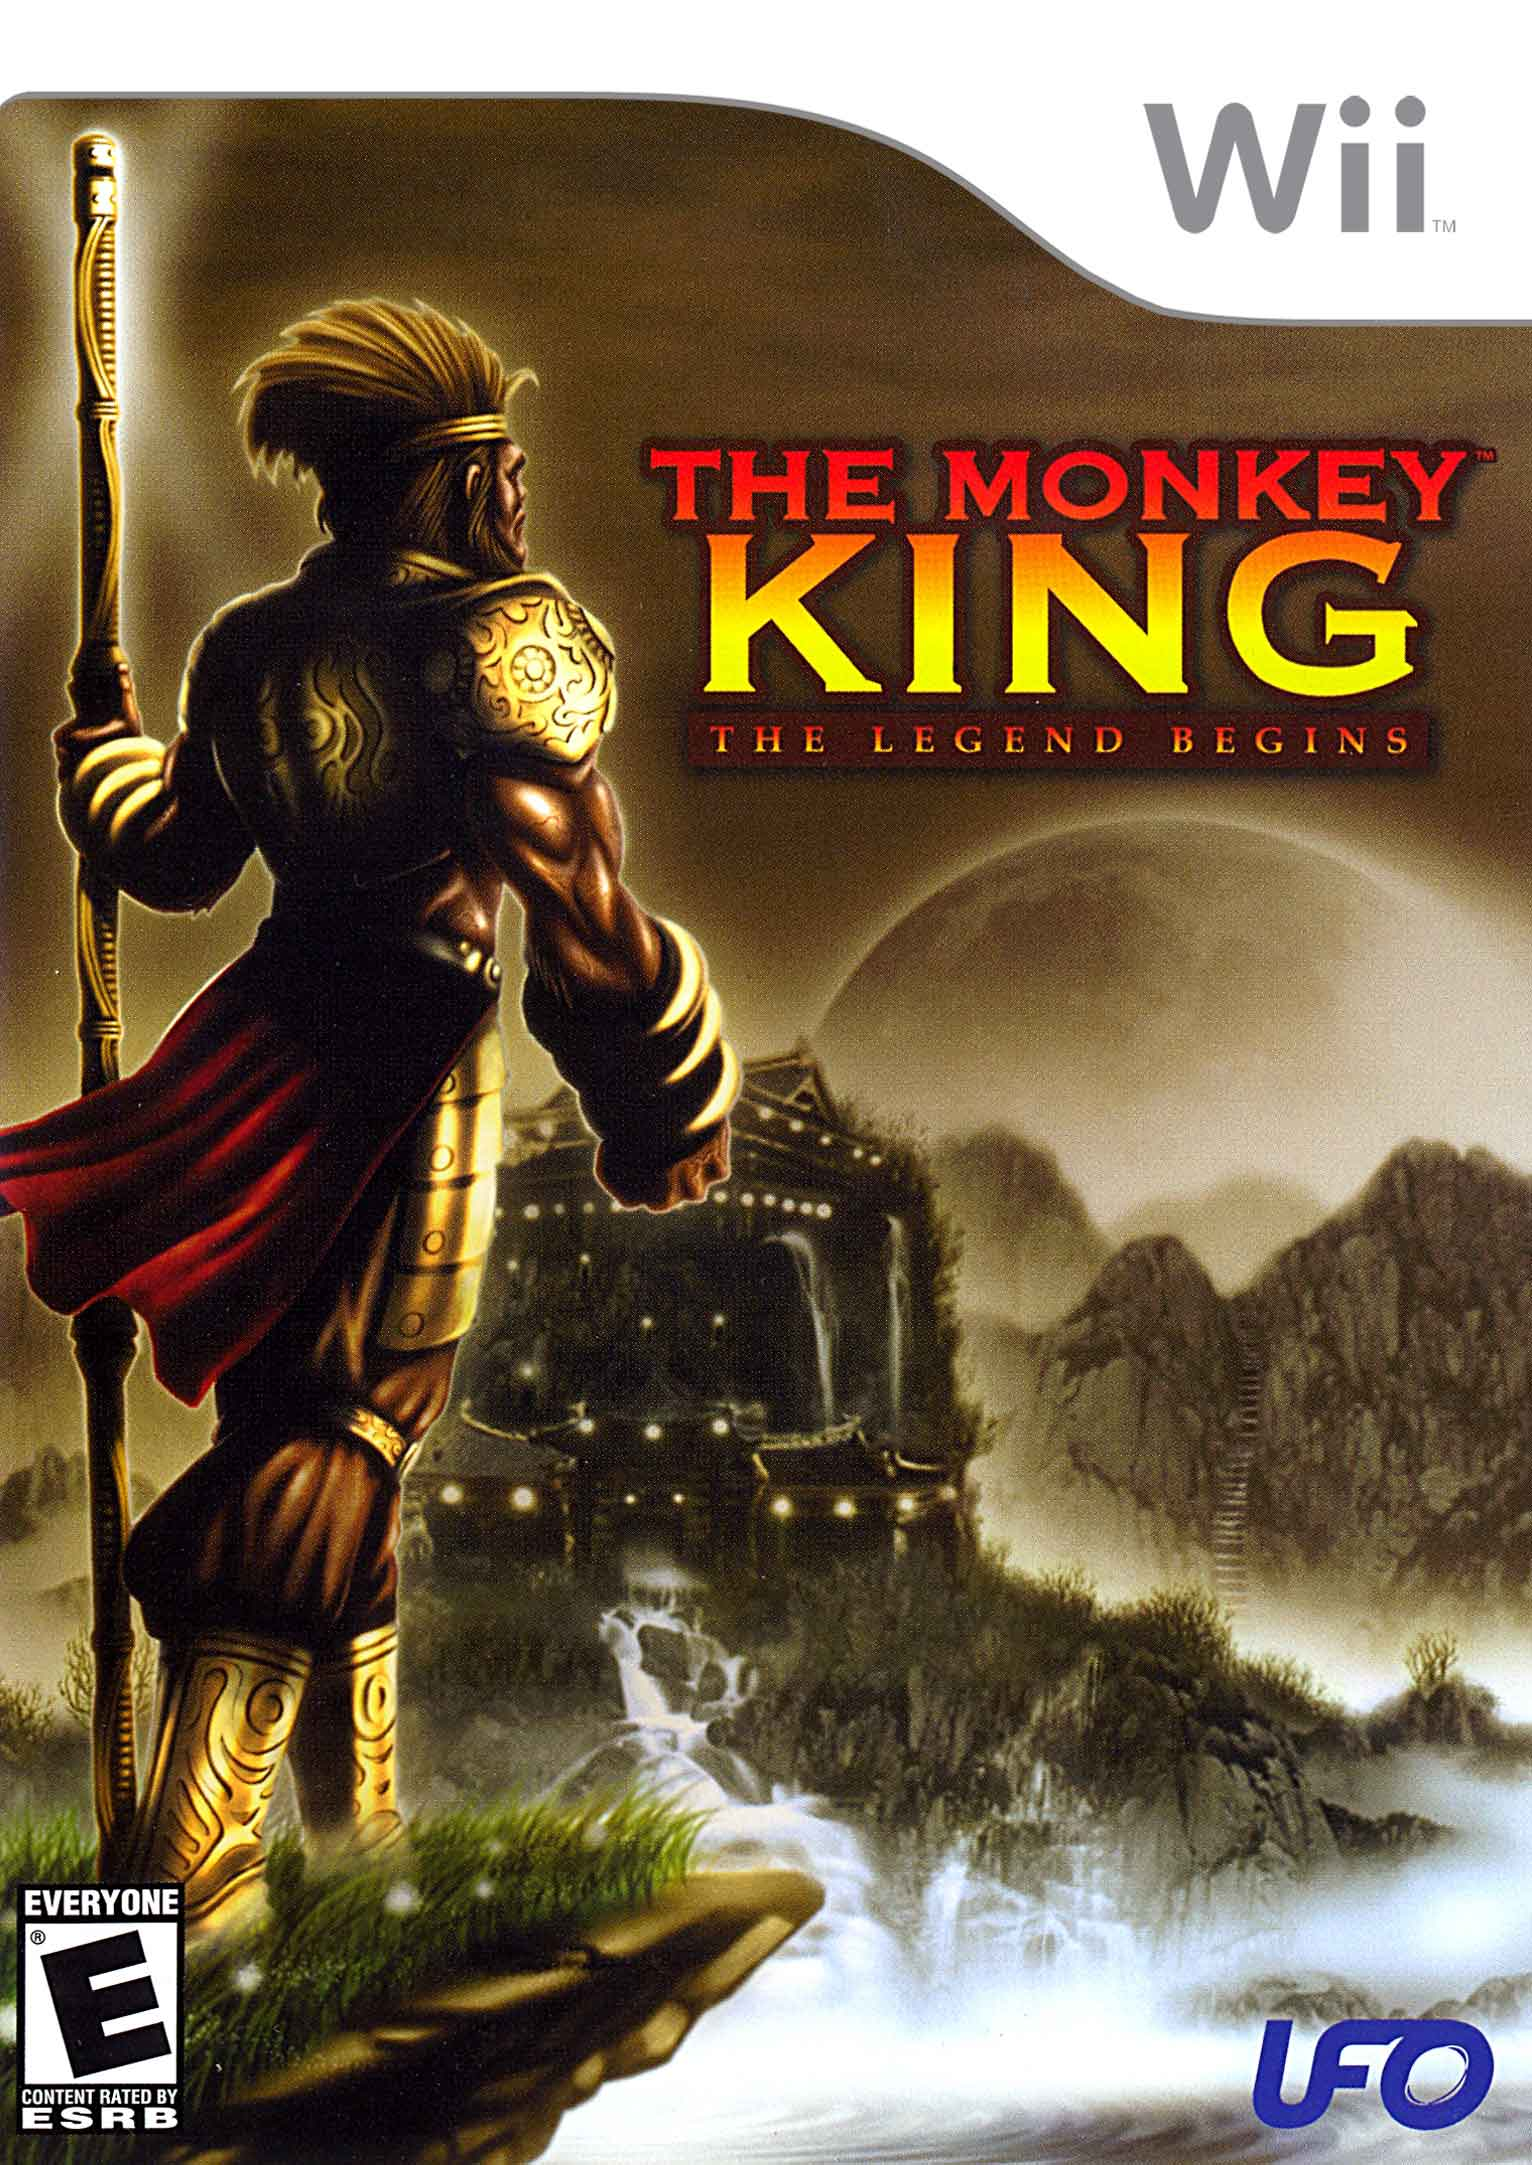 The Monkey King- The Legend Begins